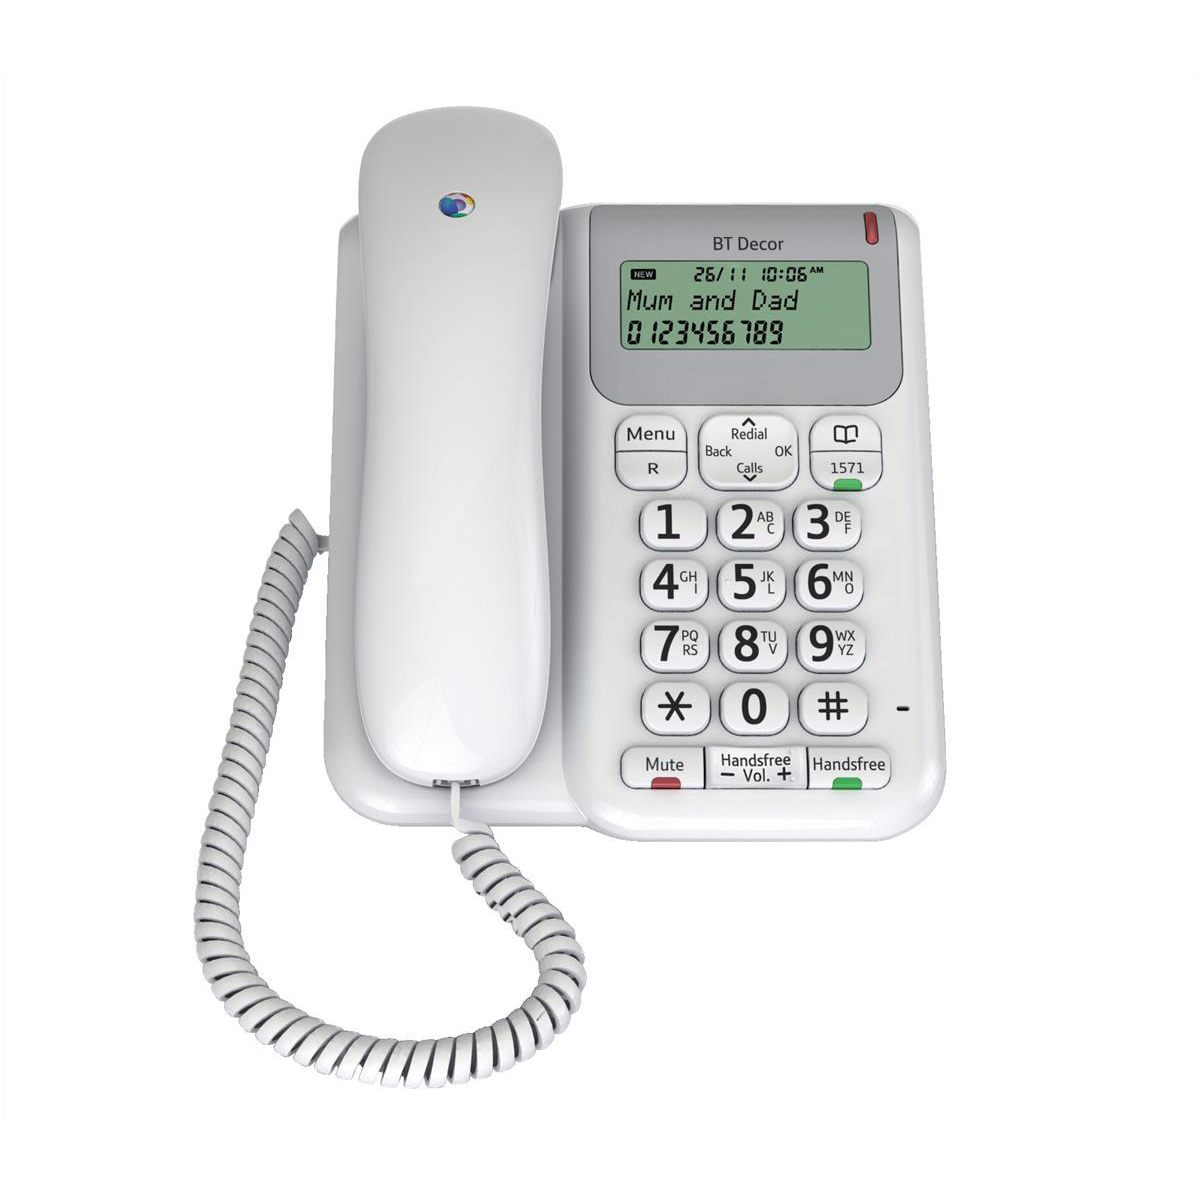 Image for BT Decor 2200 Telephone 3-line LCD 50-entry Phonebook 30 Caller IDs Ref 061127